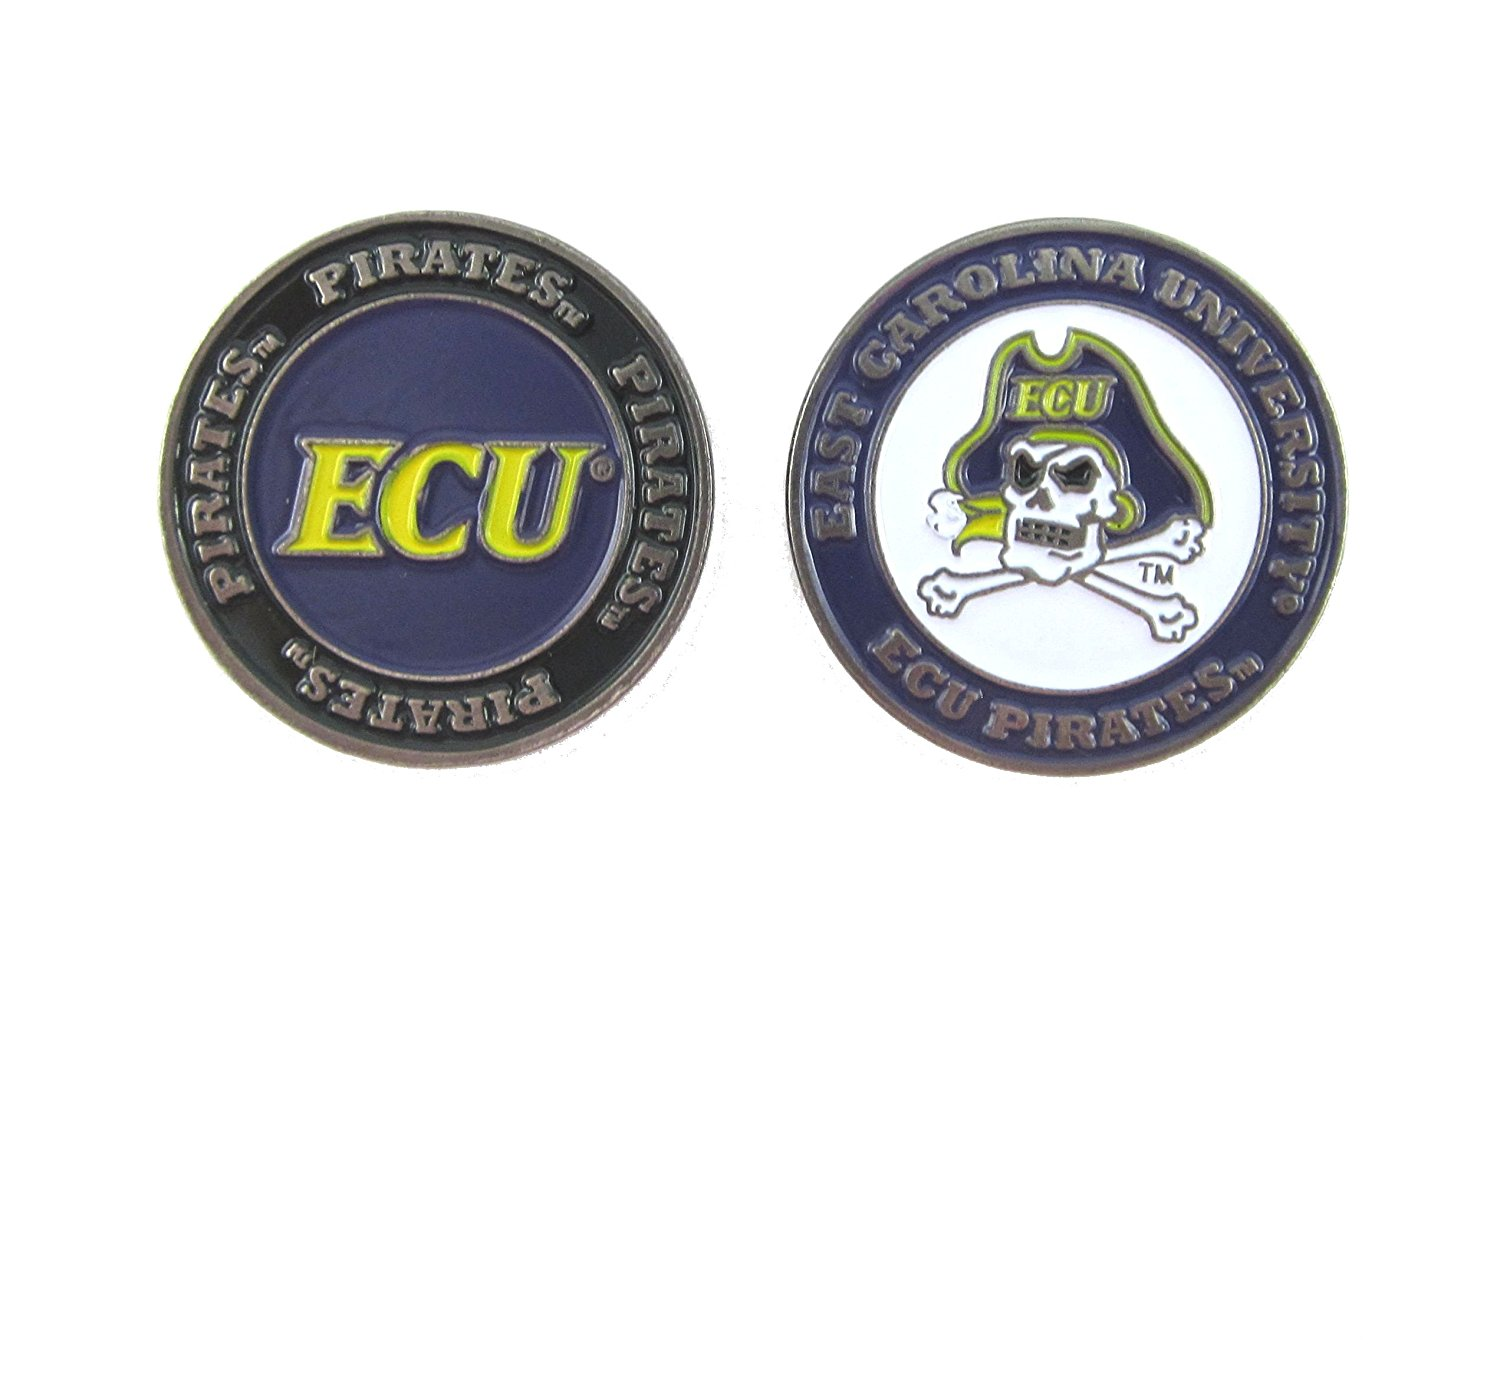 East Carolina Pirates Double-Sided ECU Golf Ball Marker, East Carolina University Golf Ball Marker By Waggle Pro Shop,USA